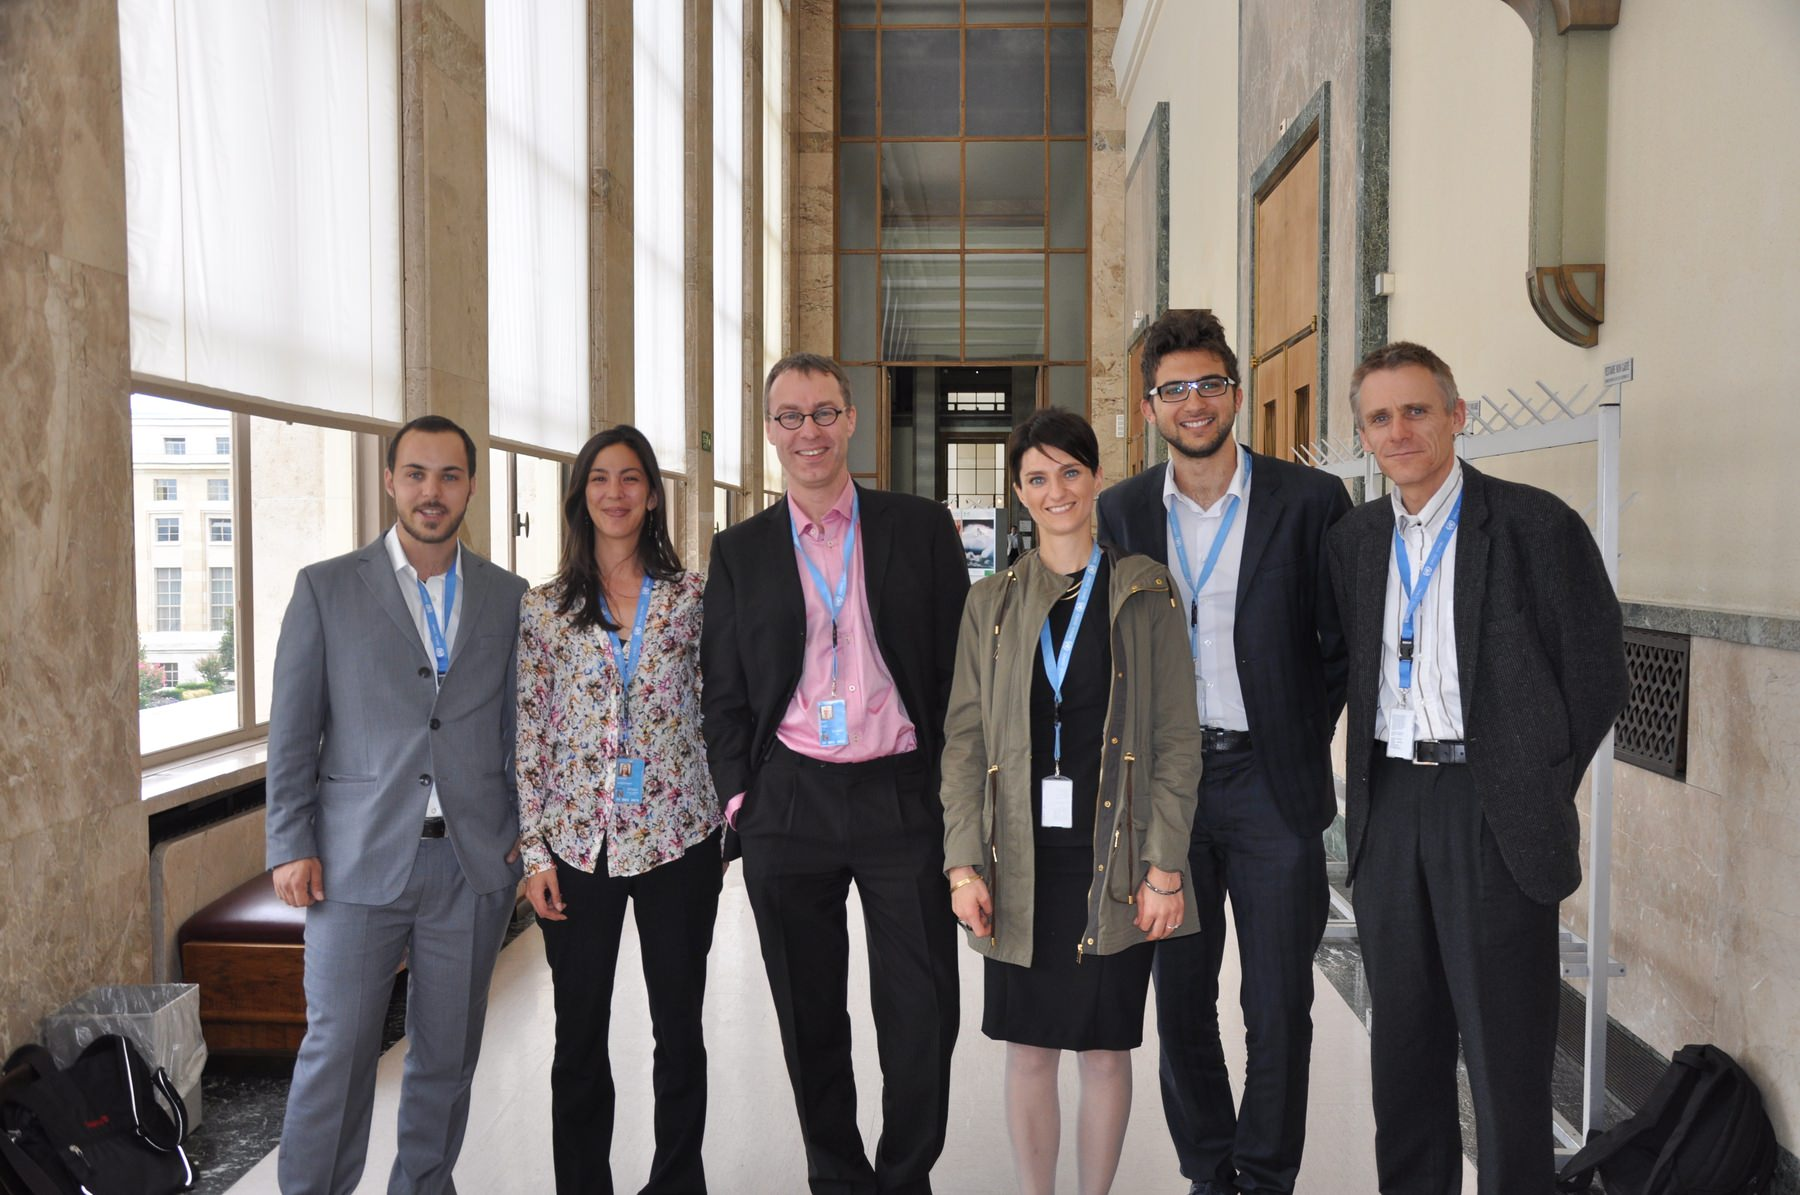 trial_un_sideevent_2013_0875